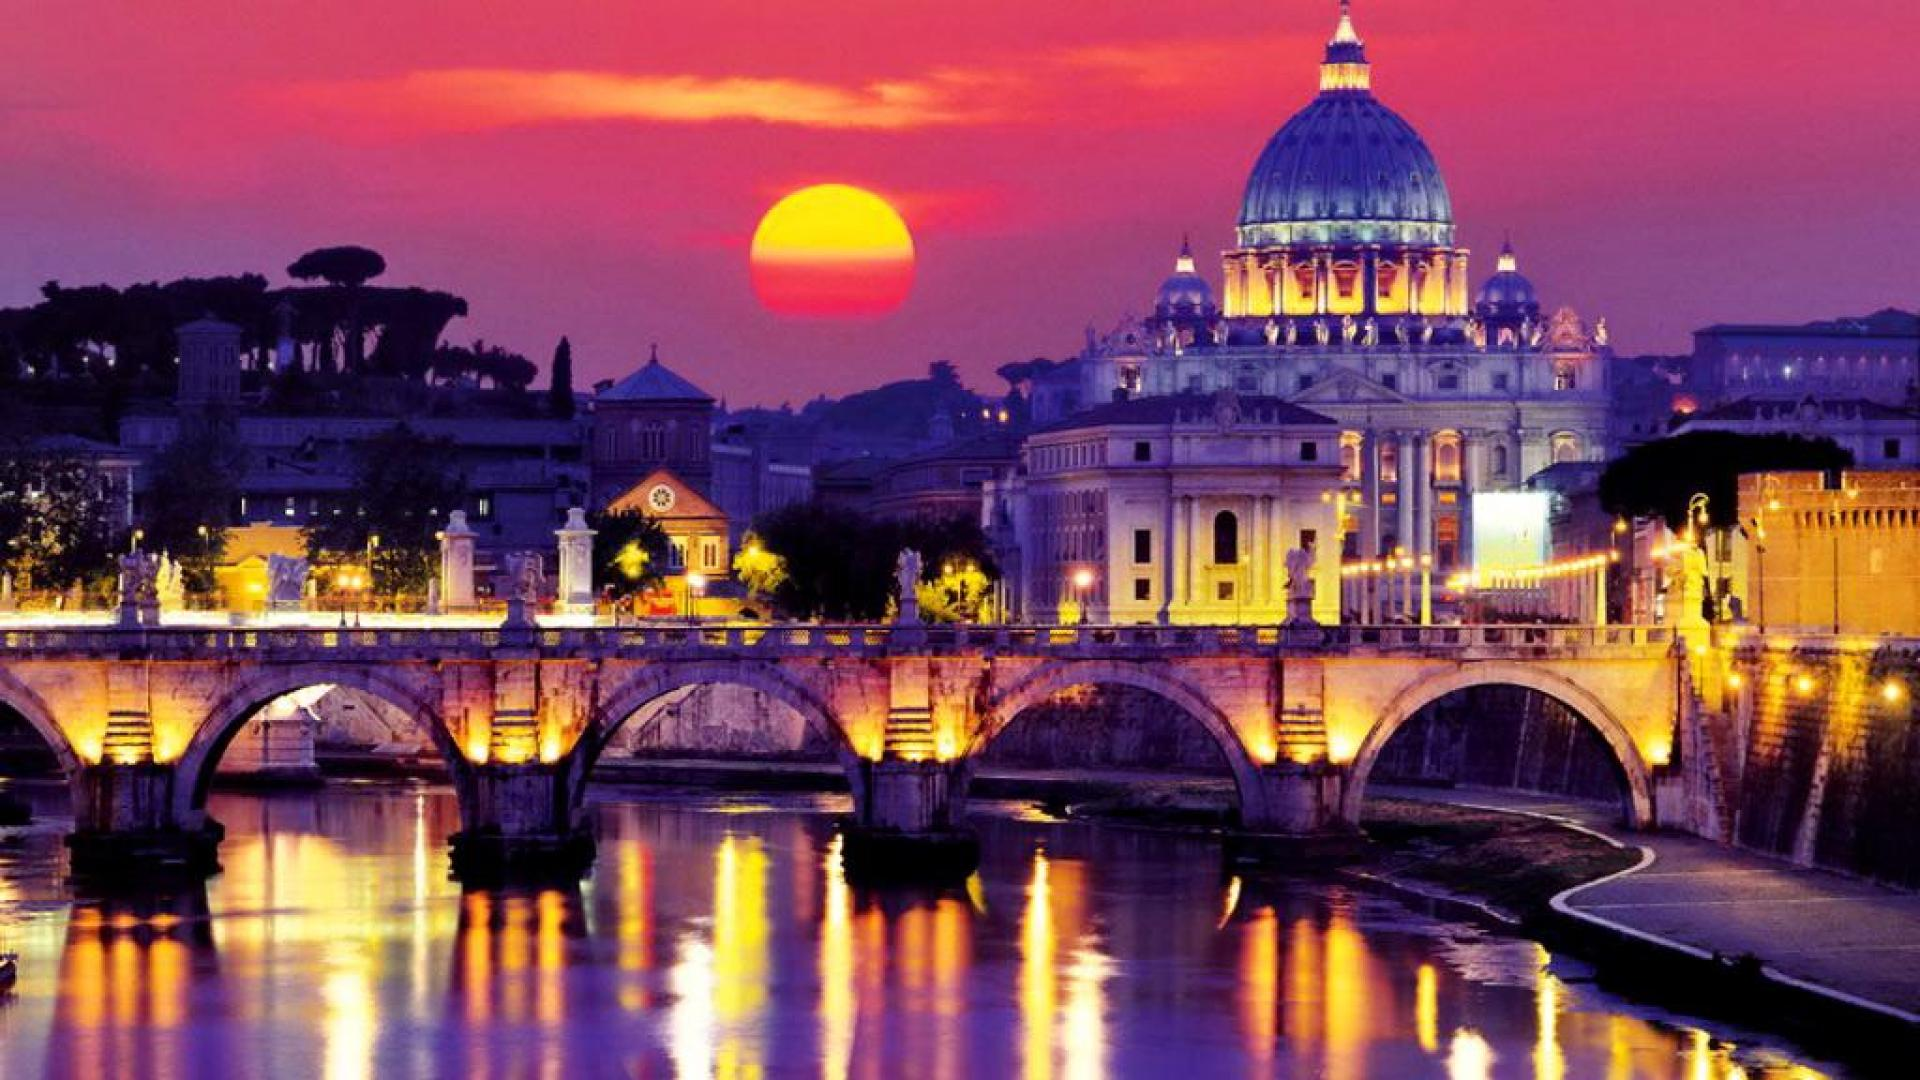 Rome City Wallpapers Top Free Rome City Backgrounds Wallpaperaccess